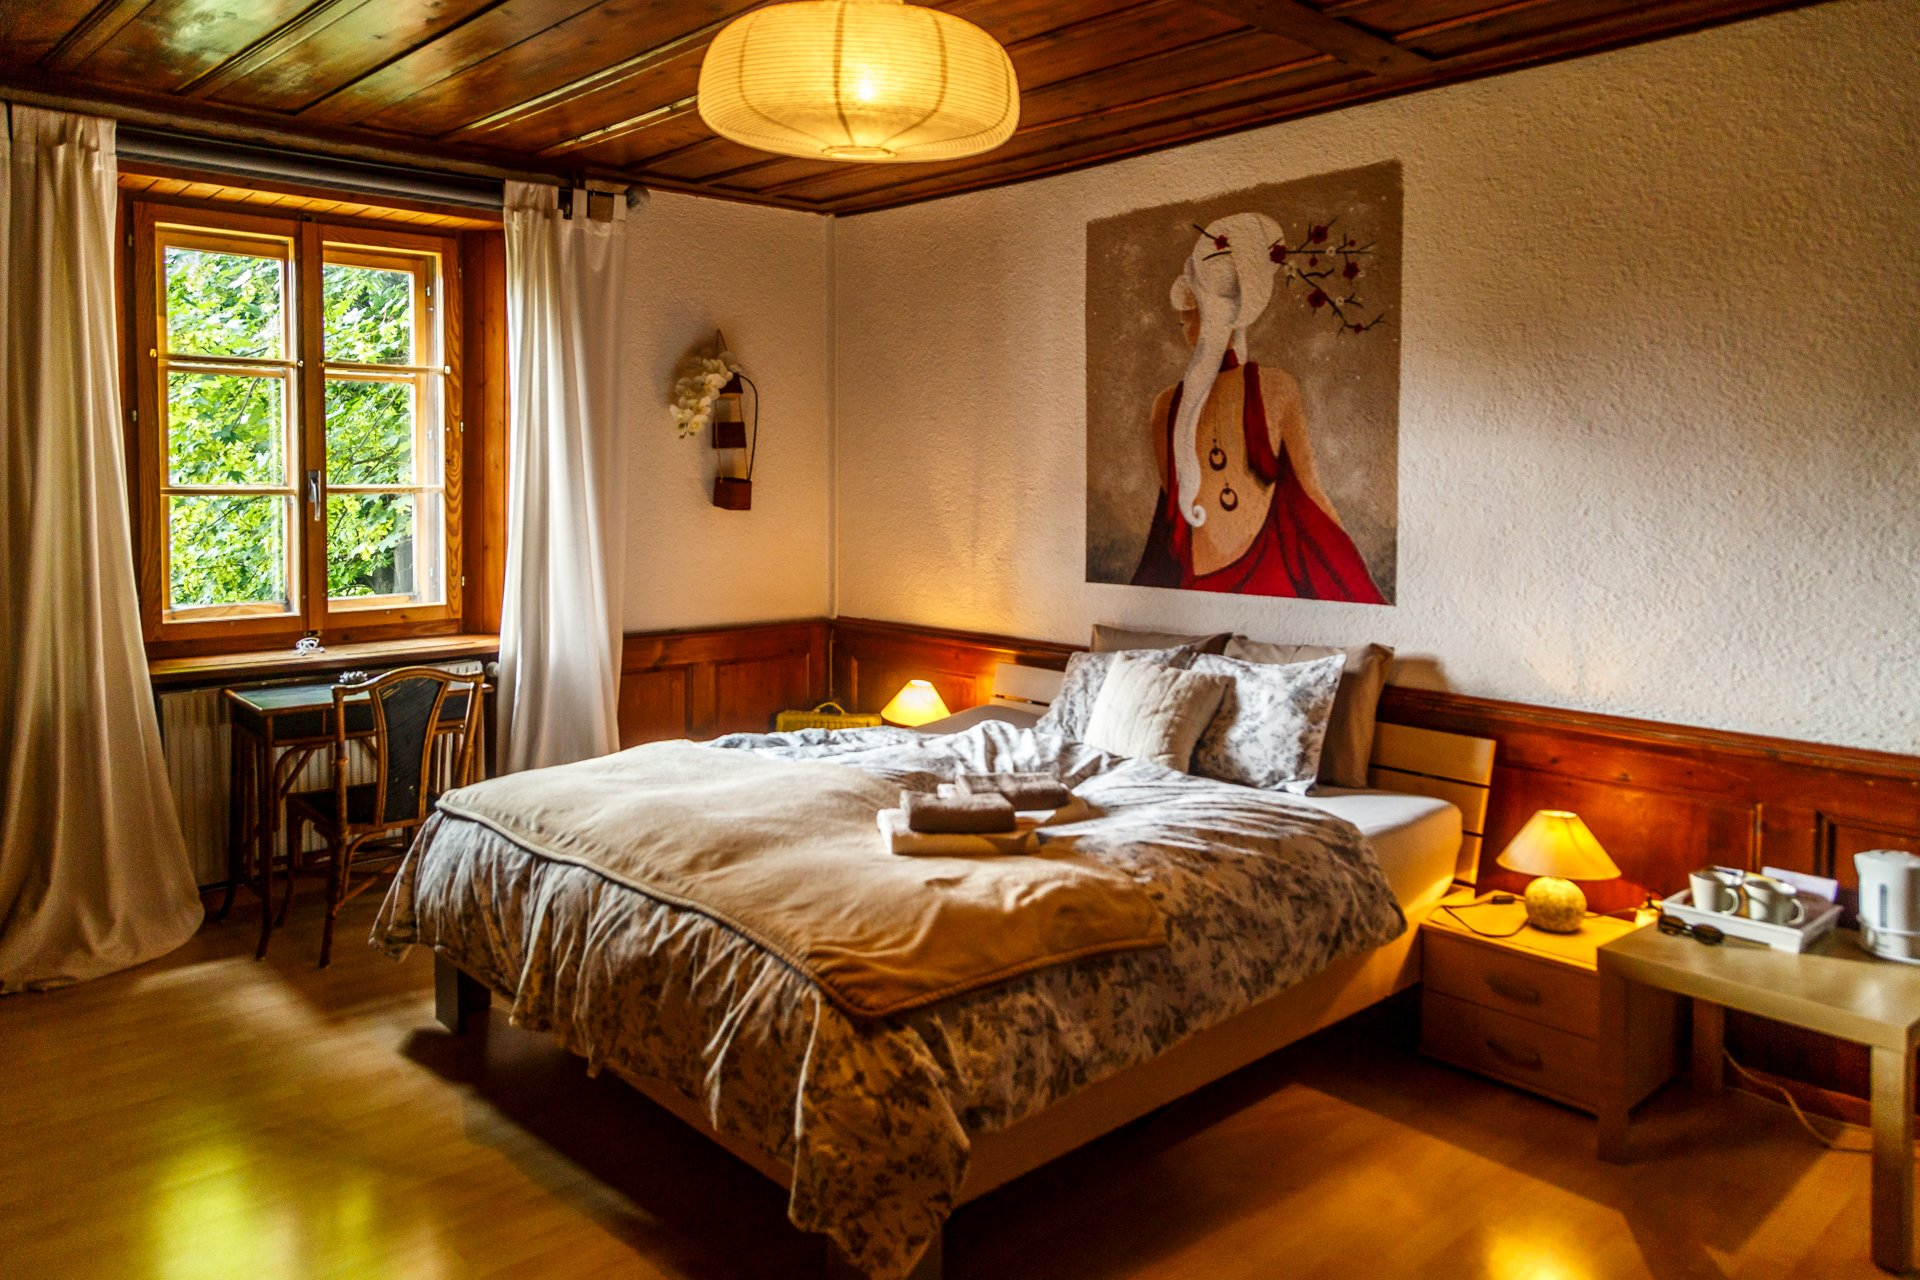 les-Pommerats-Bed-and-Breakfast